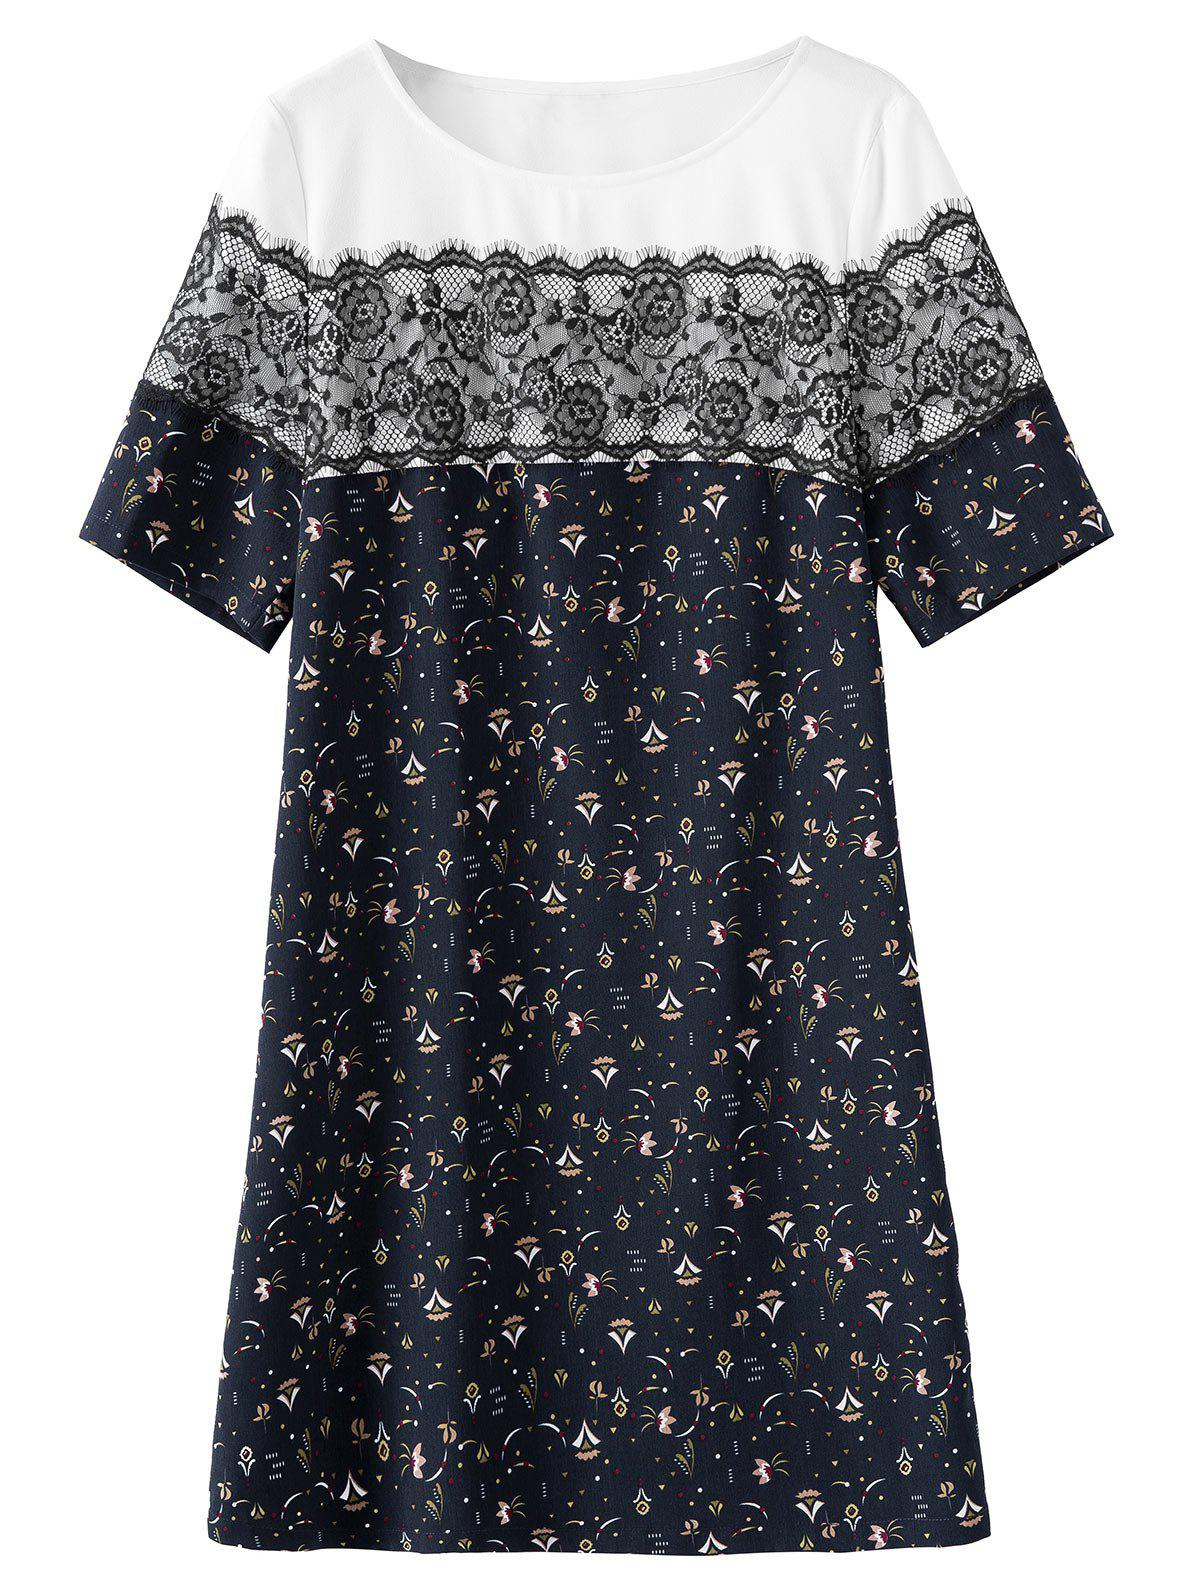 Lace Trim Plus Size Print Dress - PURPLISH BLUE 5XL